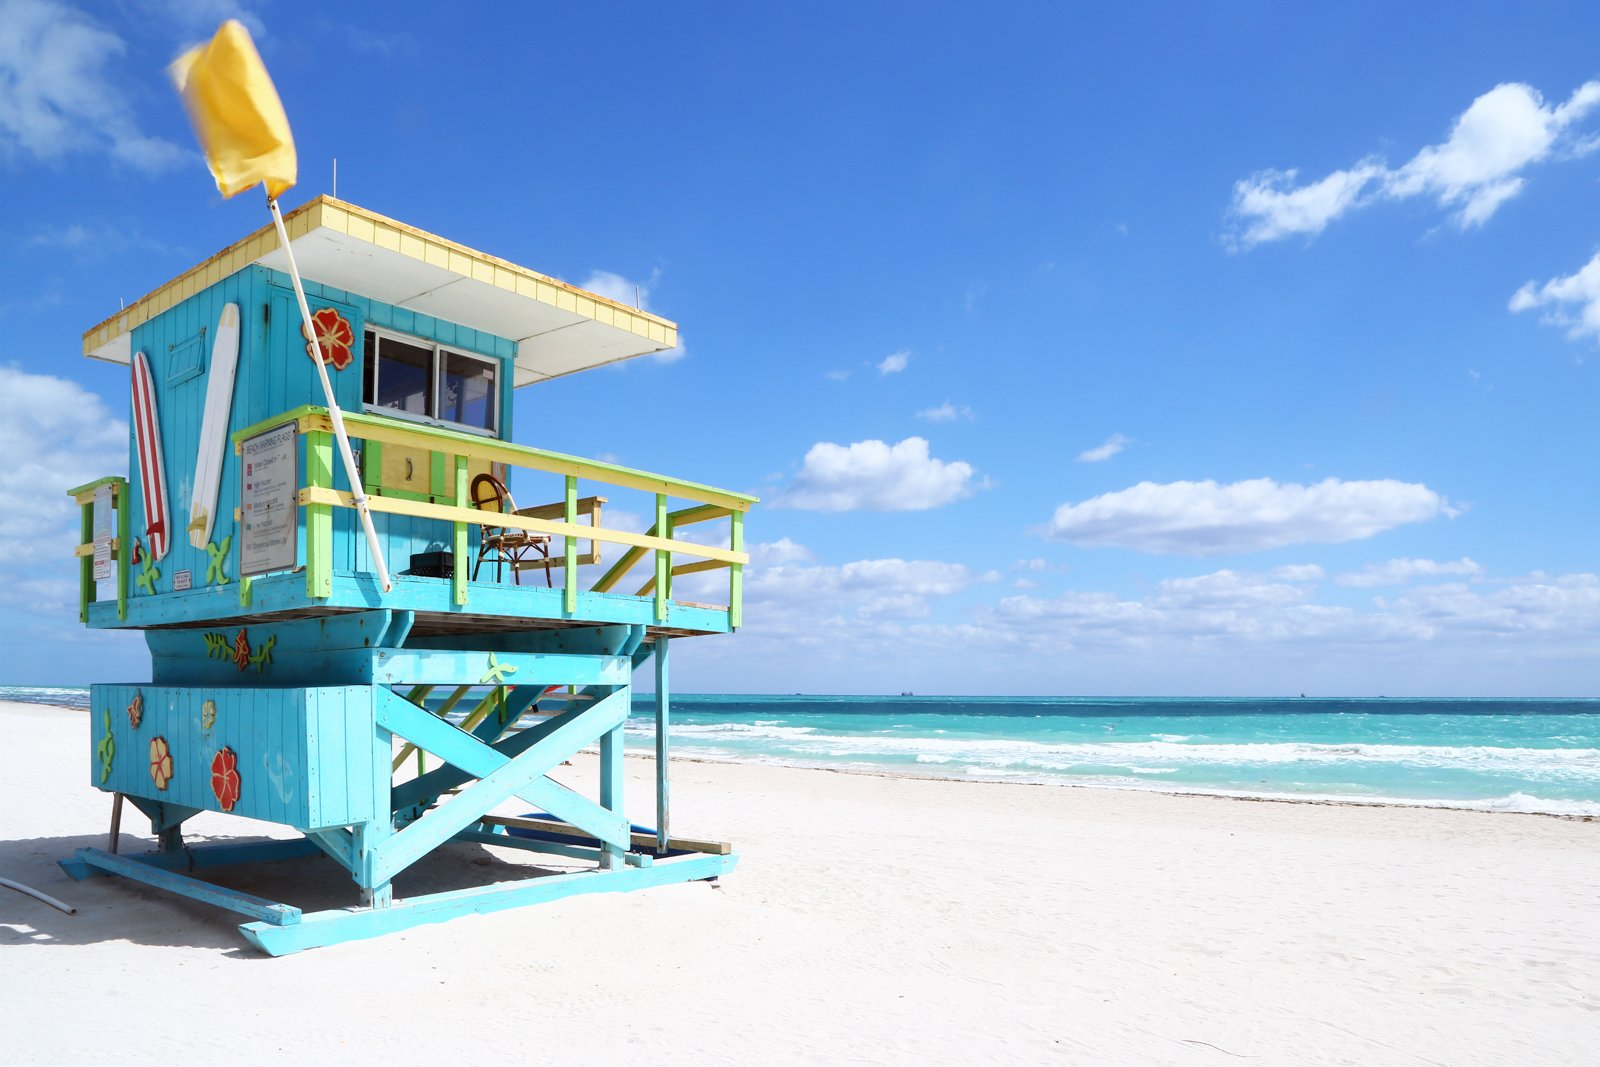 Lifeguard hut in one of the deserted Florida beaches. South Beach, Florida. Your guide for all the top Miami attractions and best things to do in Miami. There are Plenty of tourist attractions in Miami Florida. This Guide presented by Flying and Travel.